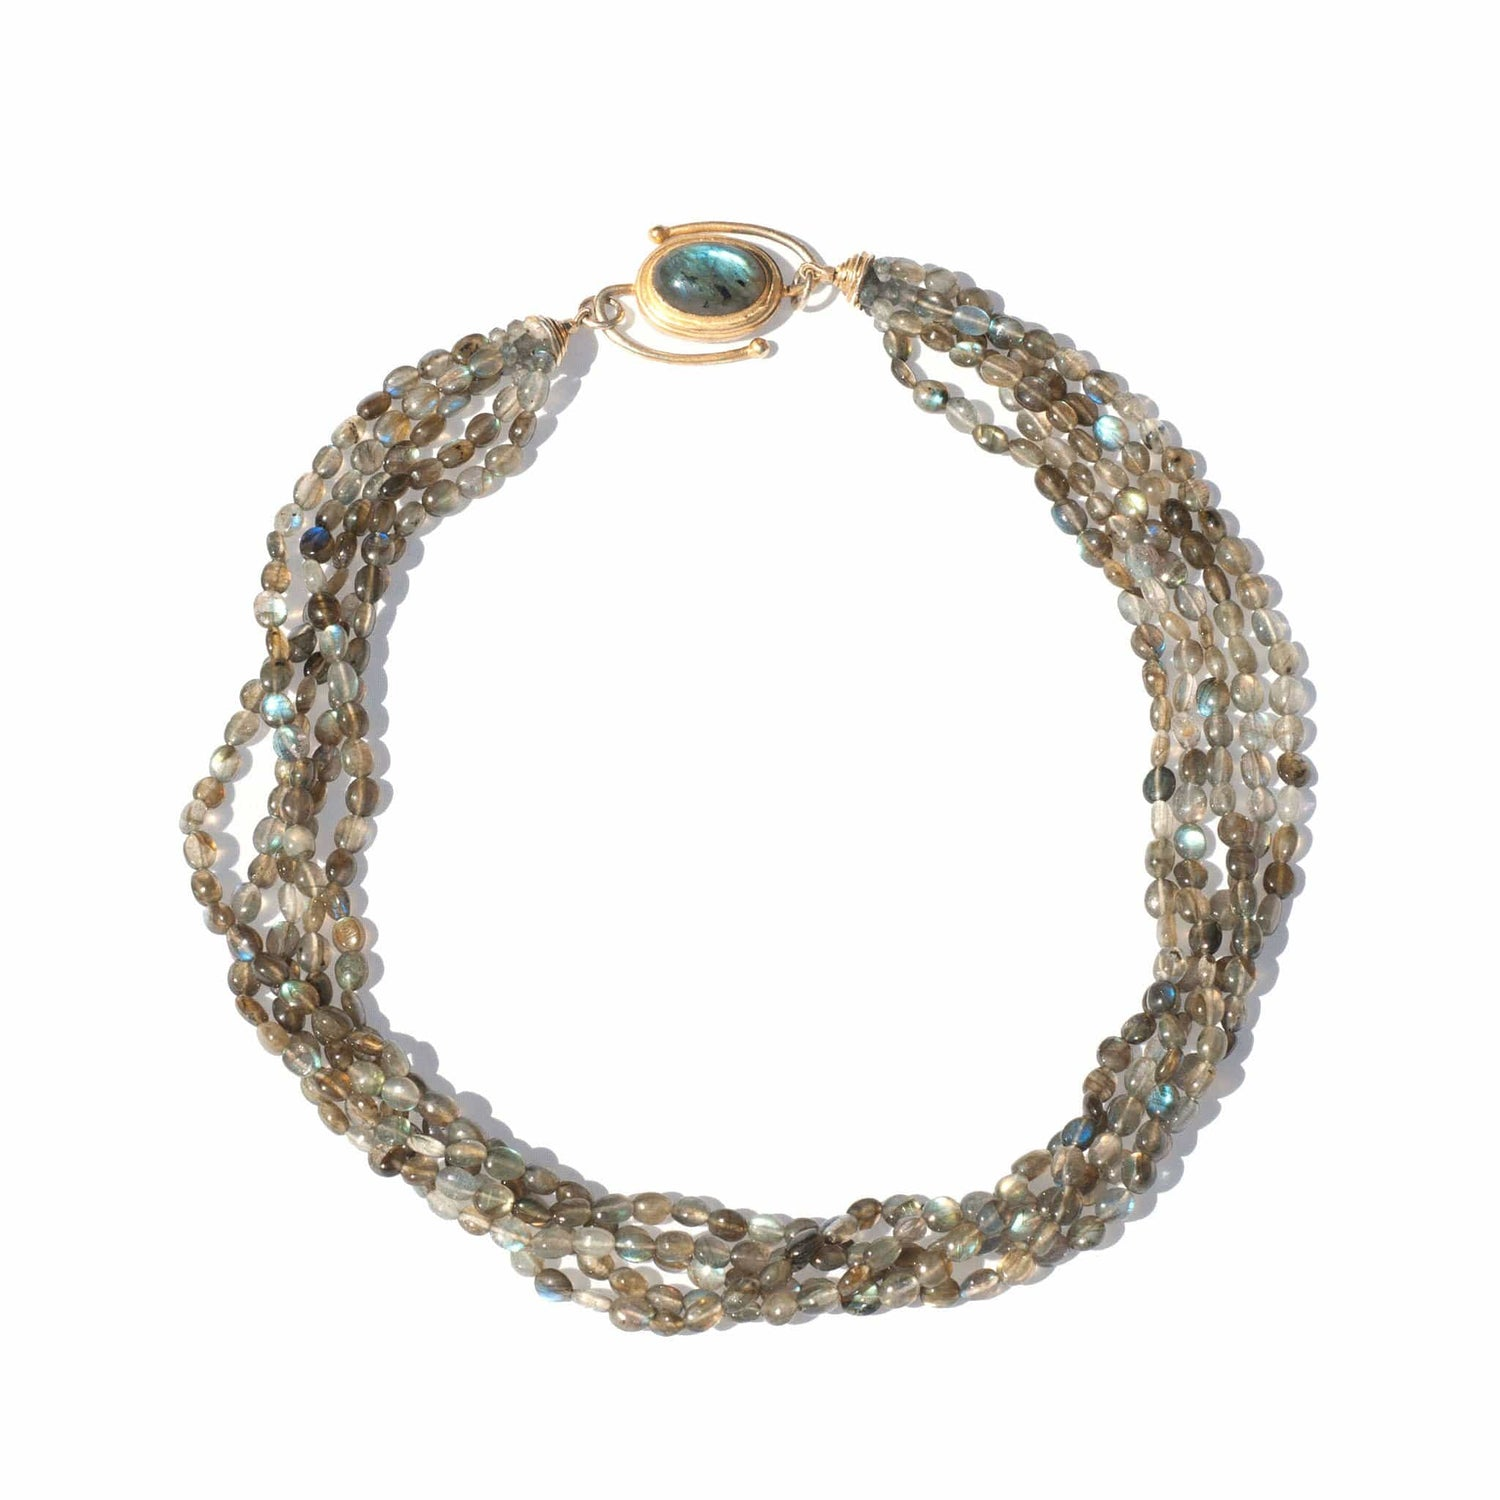 Labradorite Bead Torsade Necklace - Curated Los Angeles